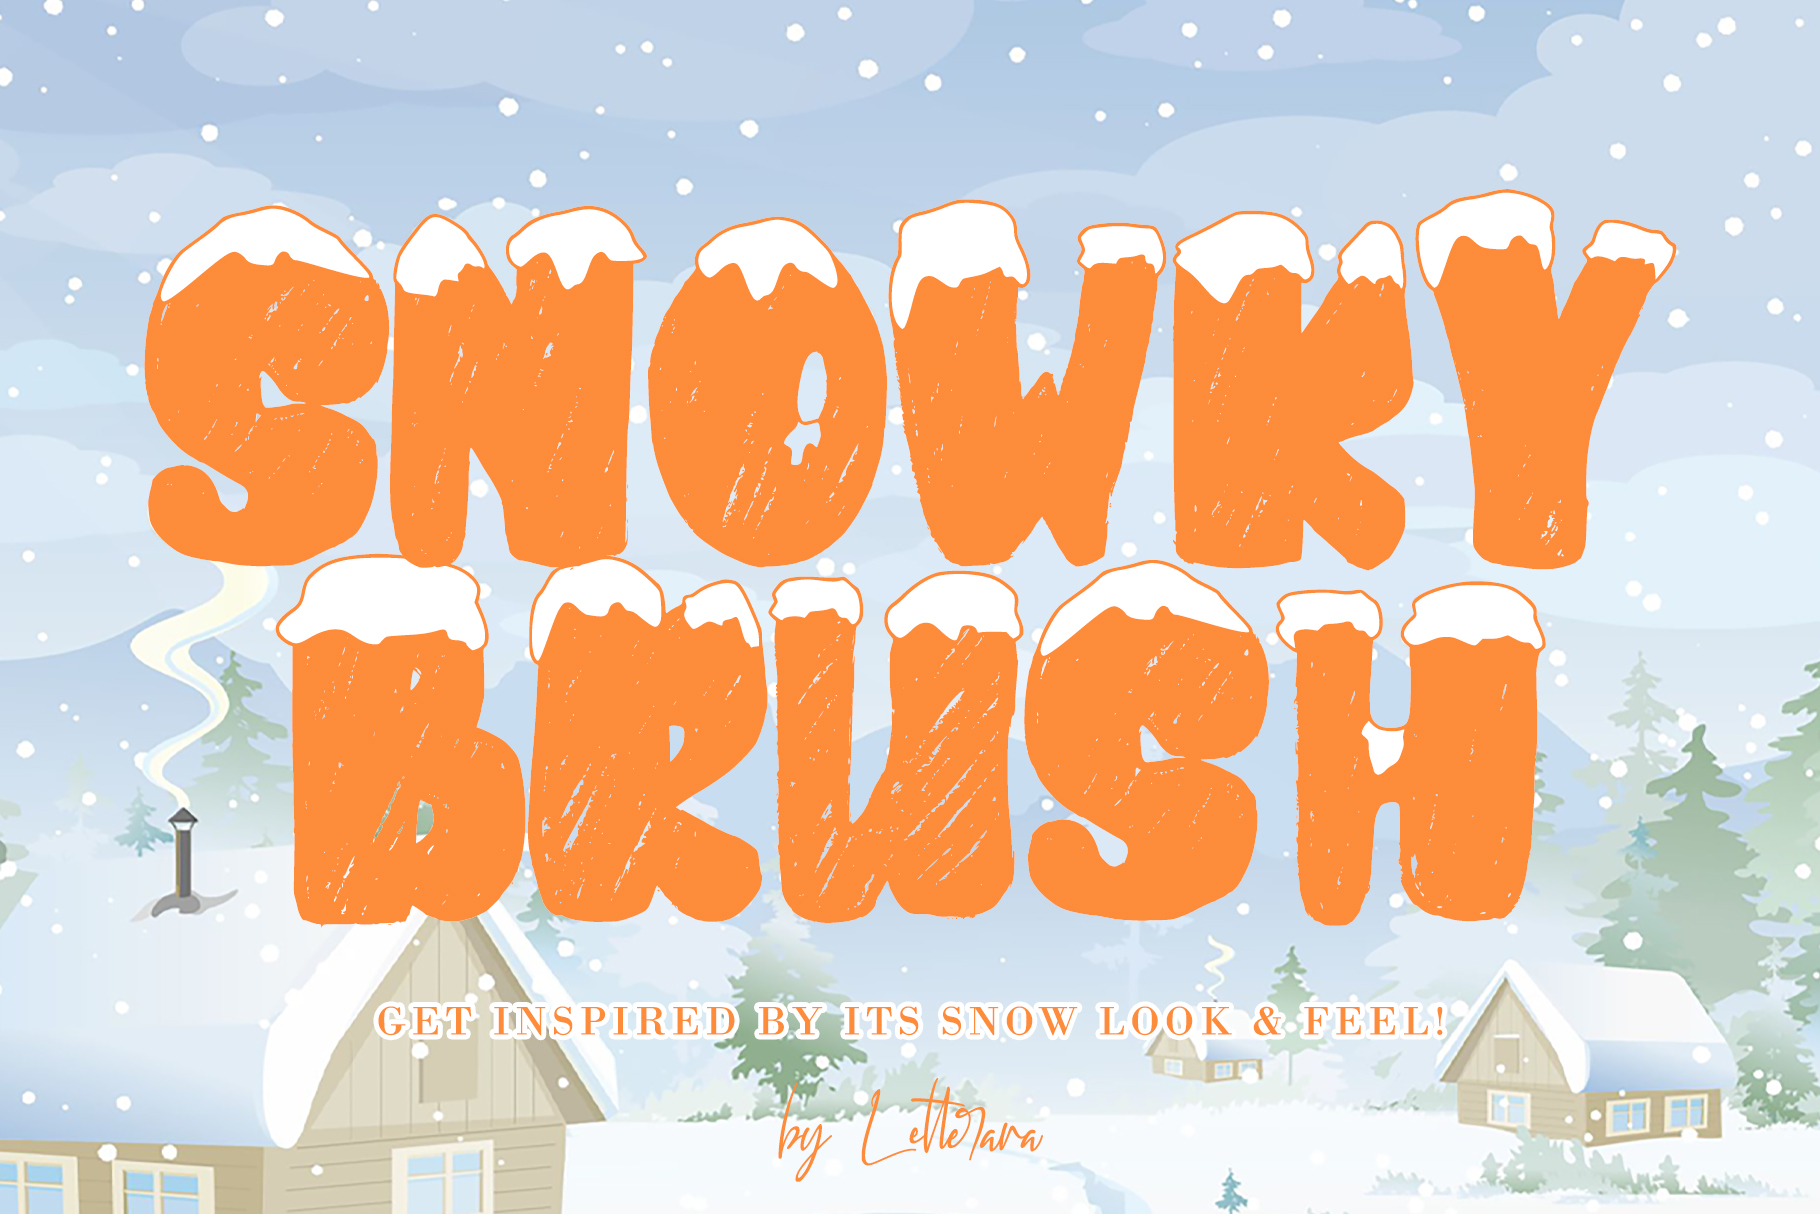 Download Free Snowkybrush Font By Thomasaradea Creative Fabrica for Cricut Explore, Silhouette and other cutting machines.